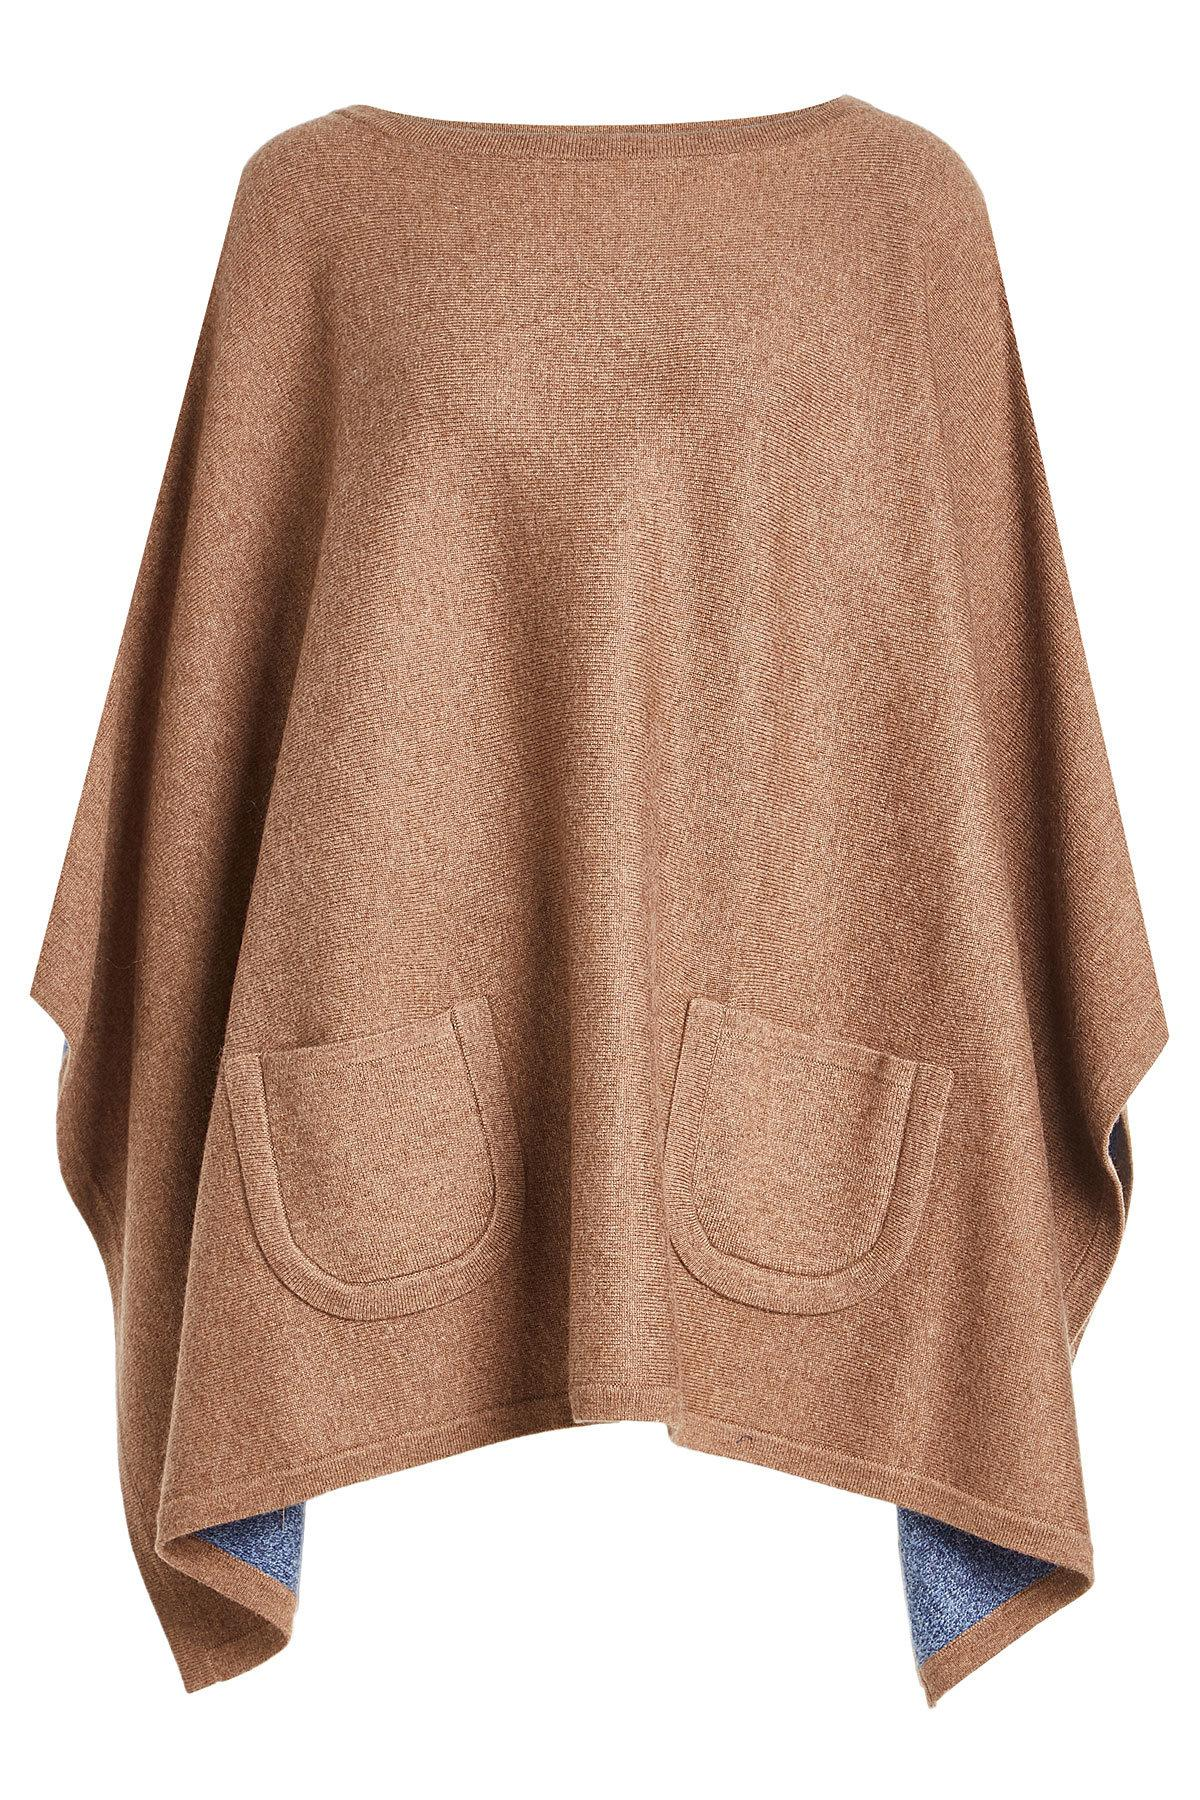 Claudia Schiffer Cape With Wool And Cashmere In Brown